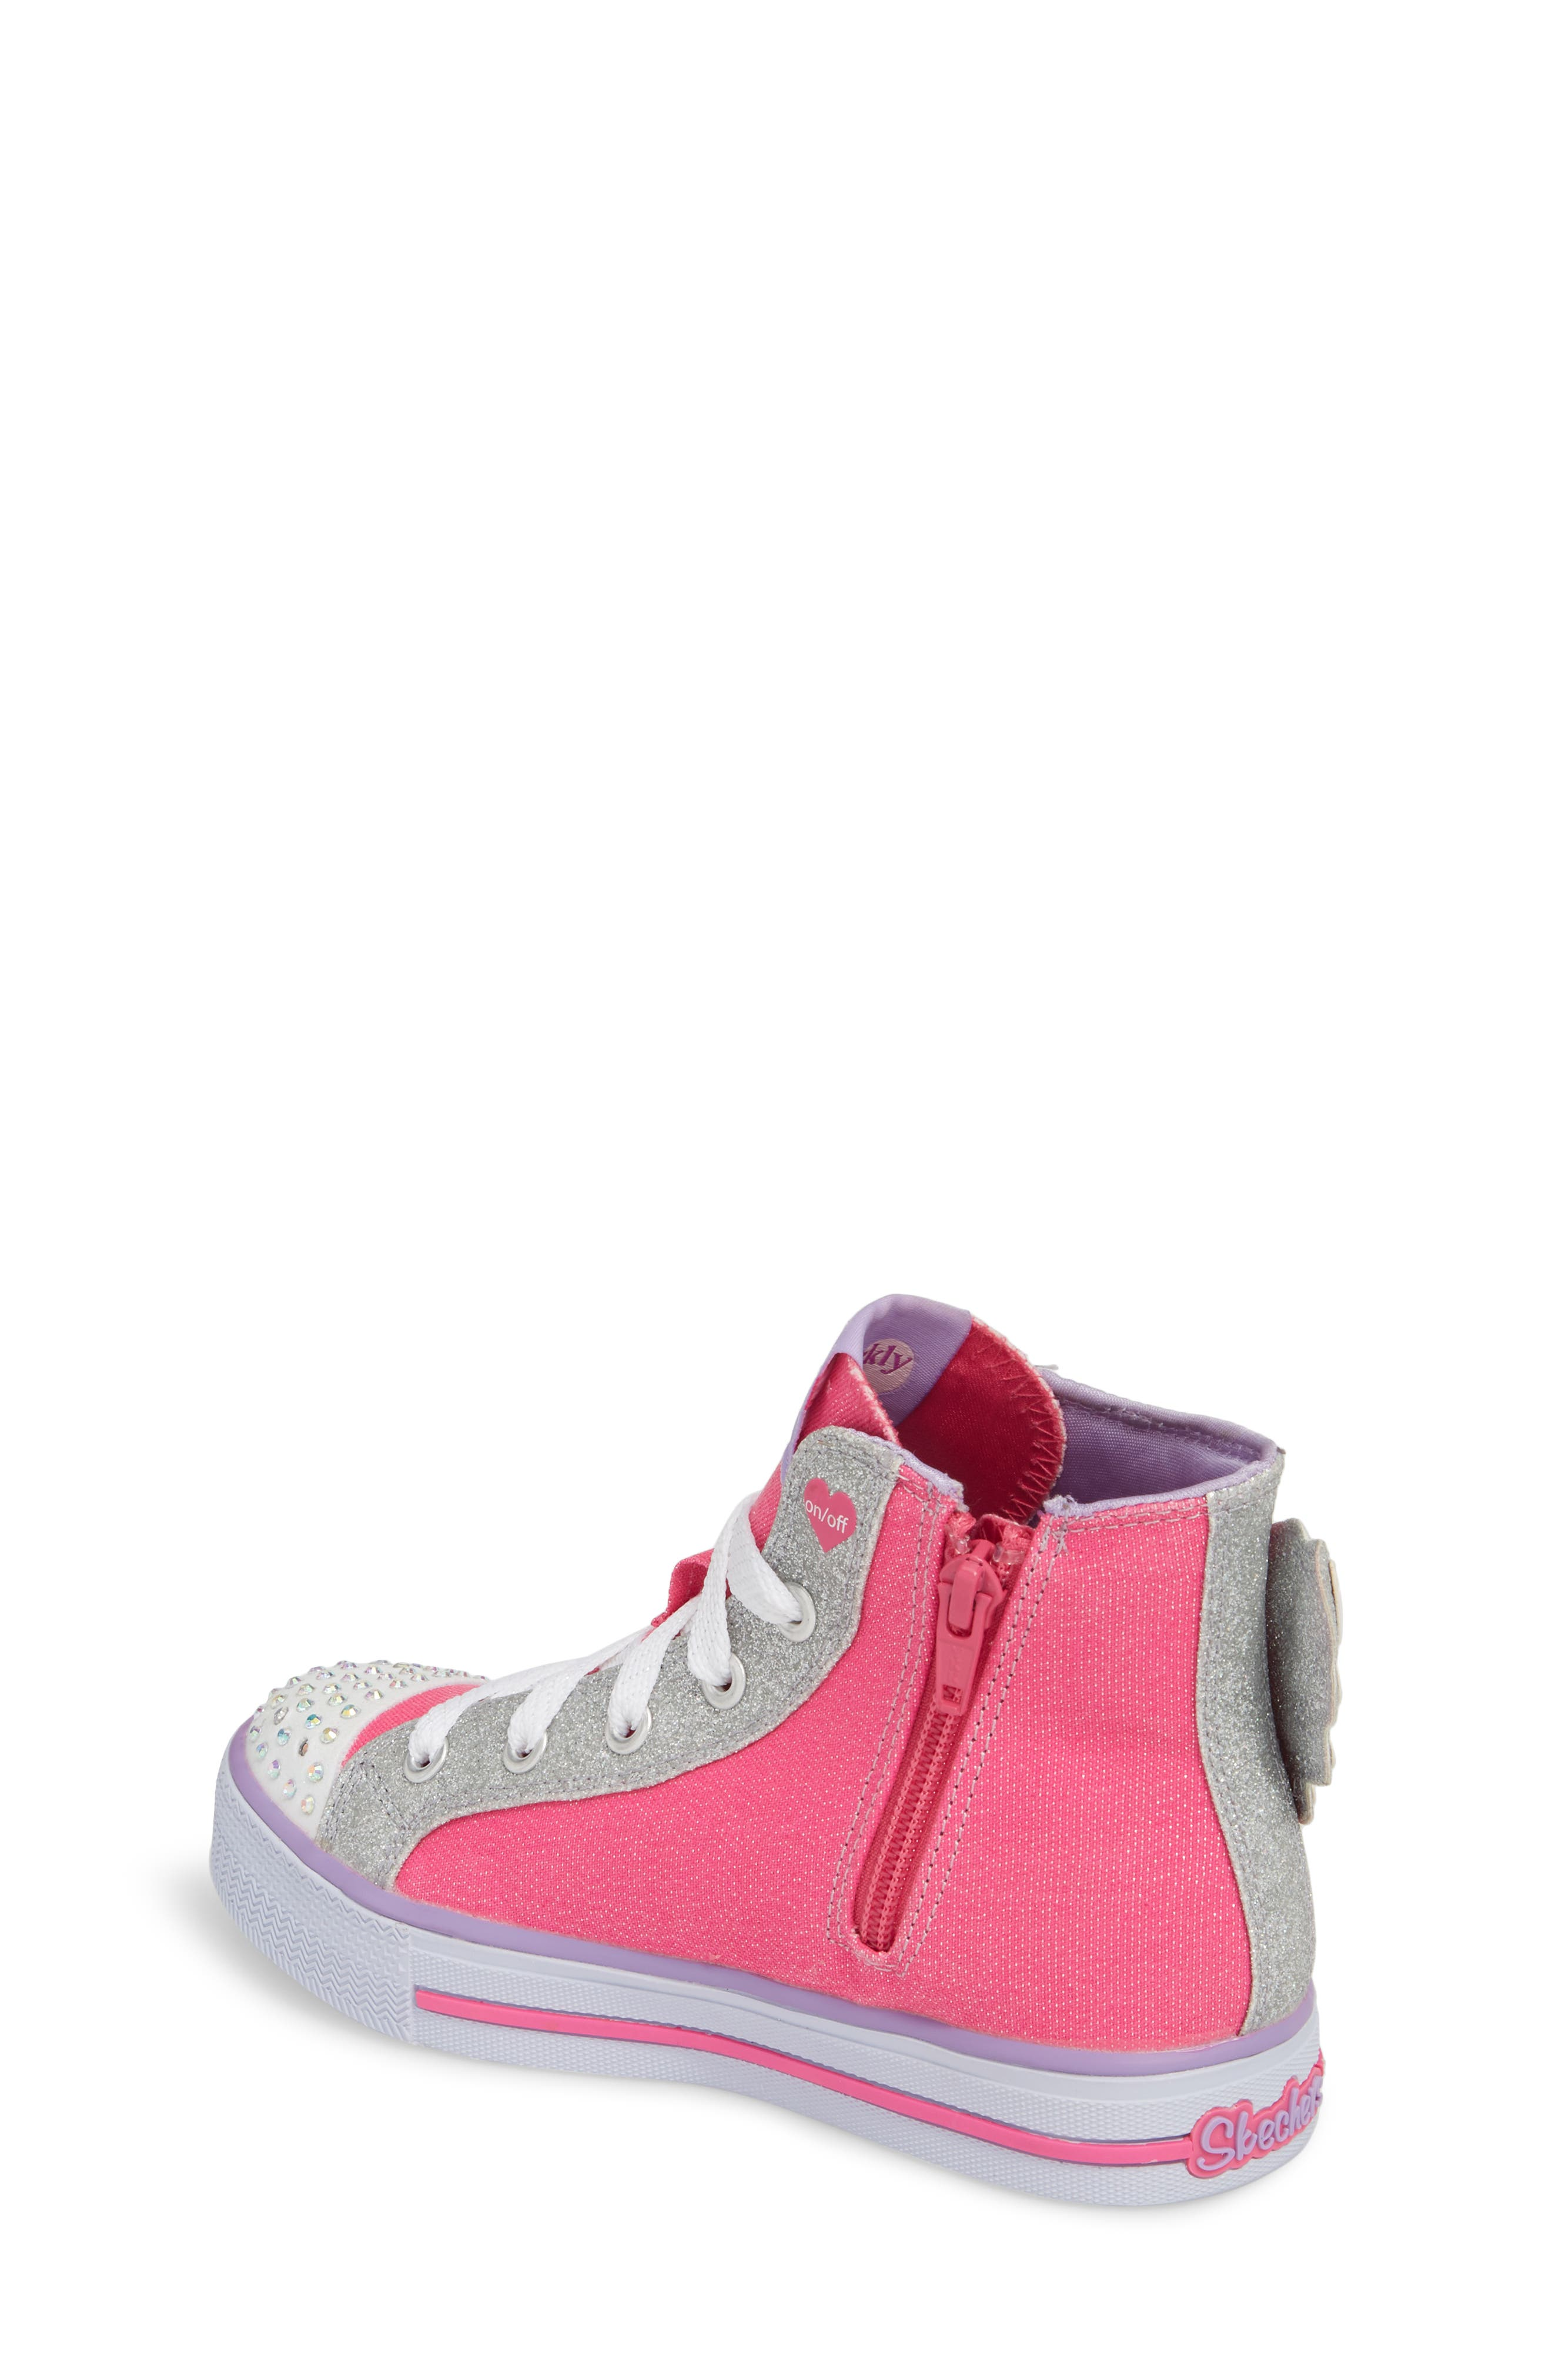 Twinkle Toes Shuffles Wonder Wings Light-Up High Top Sneaker,                             Alternate thumbnail 2, color,                             Hot Pink/ Silver